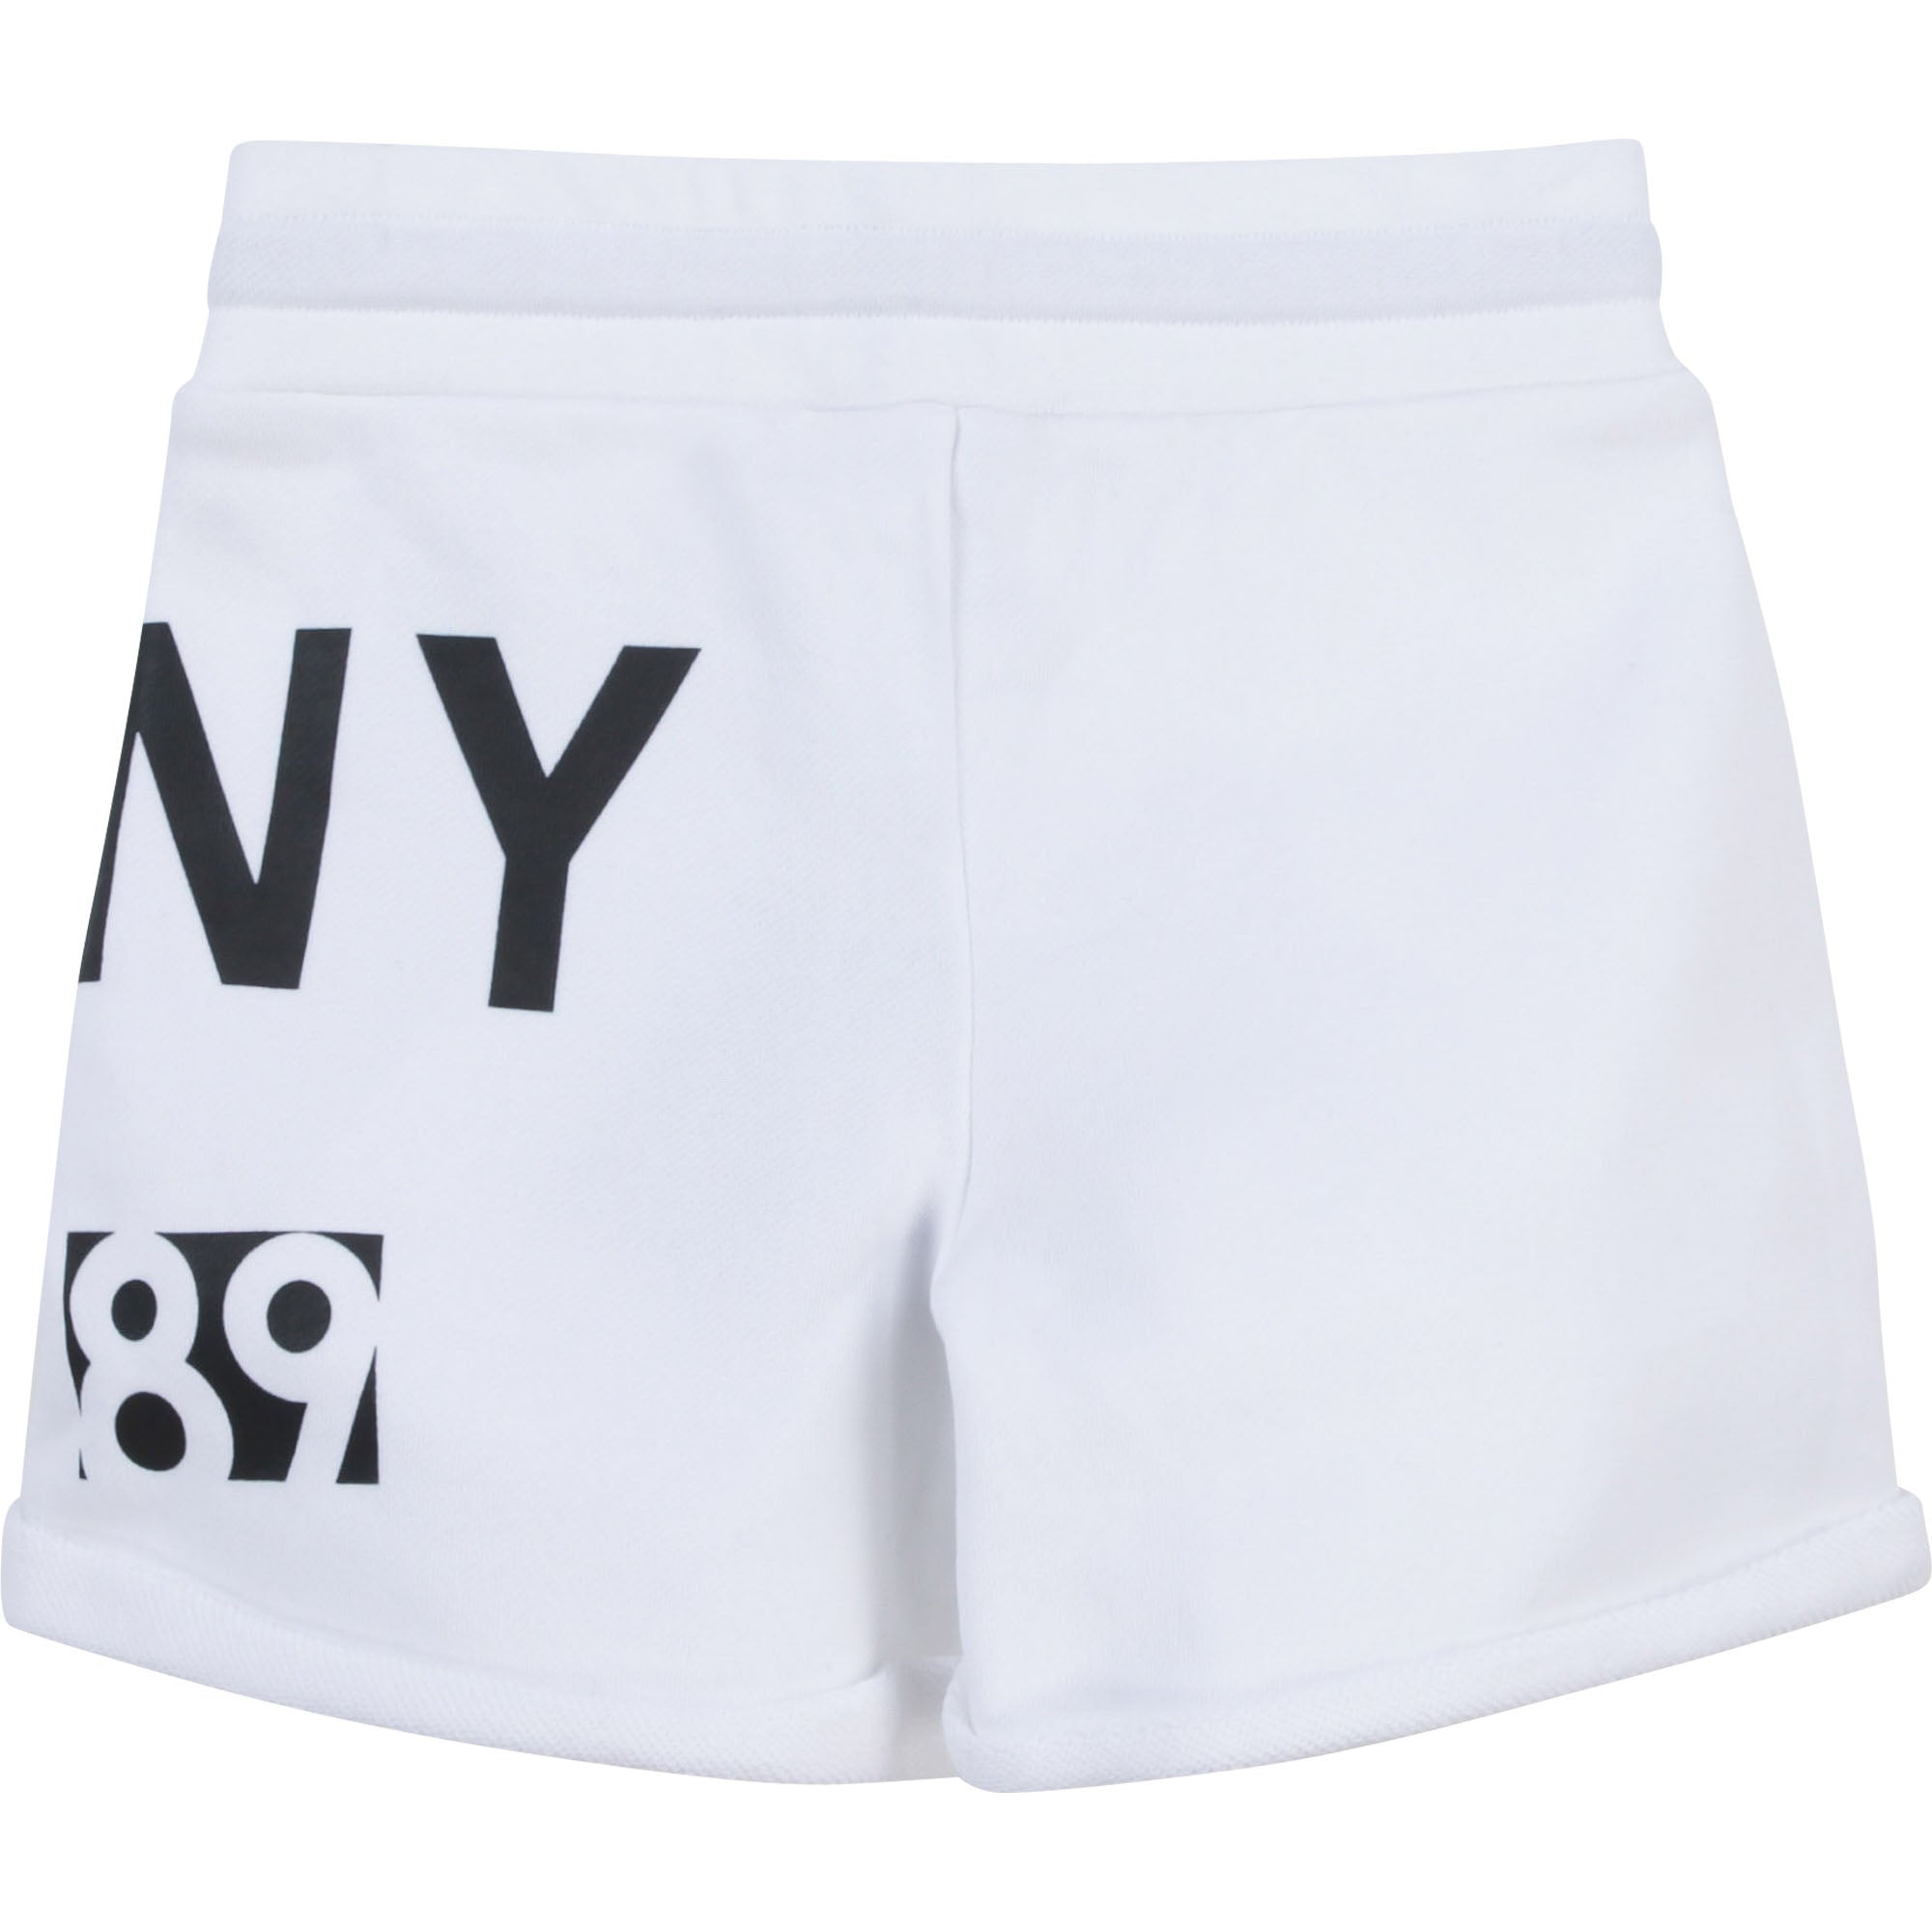 DKNY D34A23 GIRLS  WHITE BEACH SHORTS